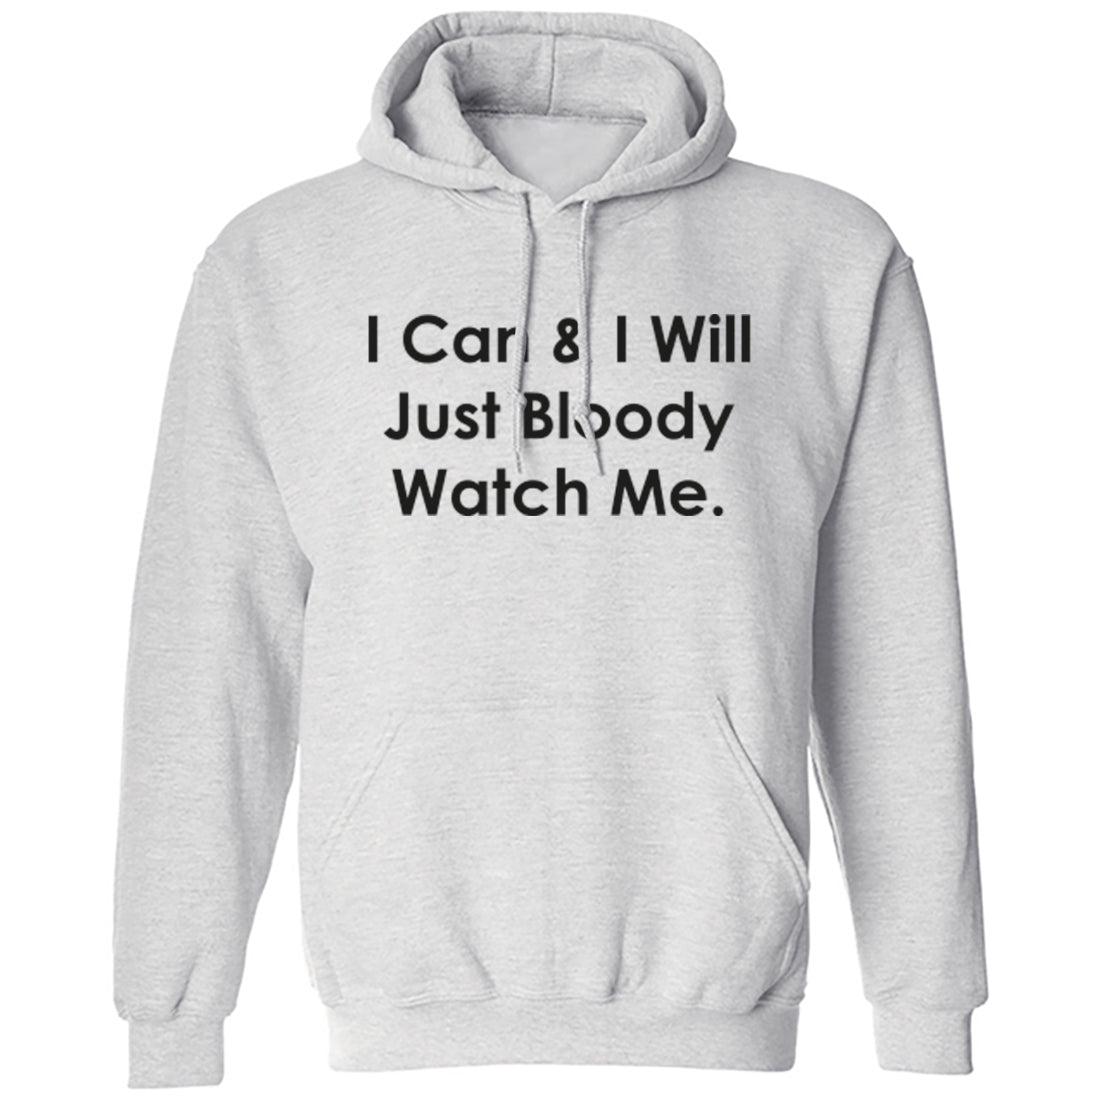 I Can & I Will Just Bloody Watch Me Unisex Hoodie K2195 - Illustrated Identity Ltd.